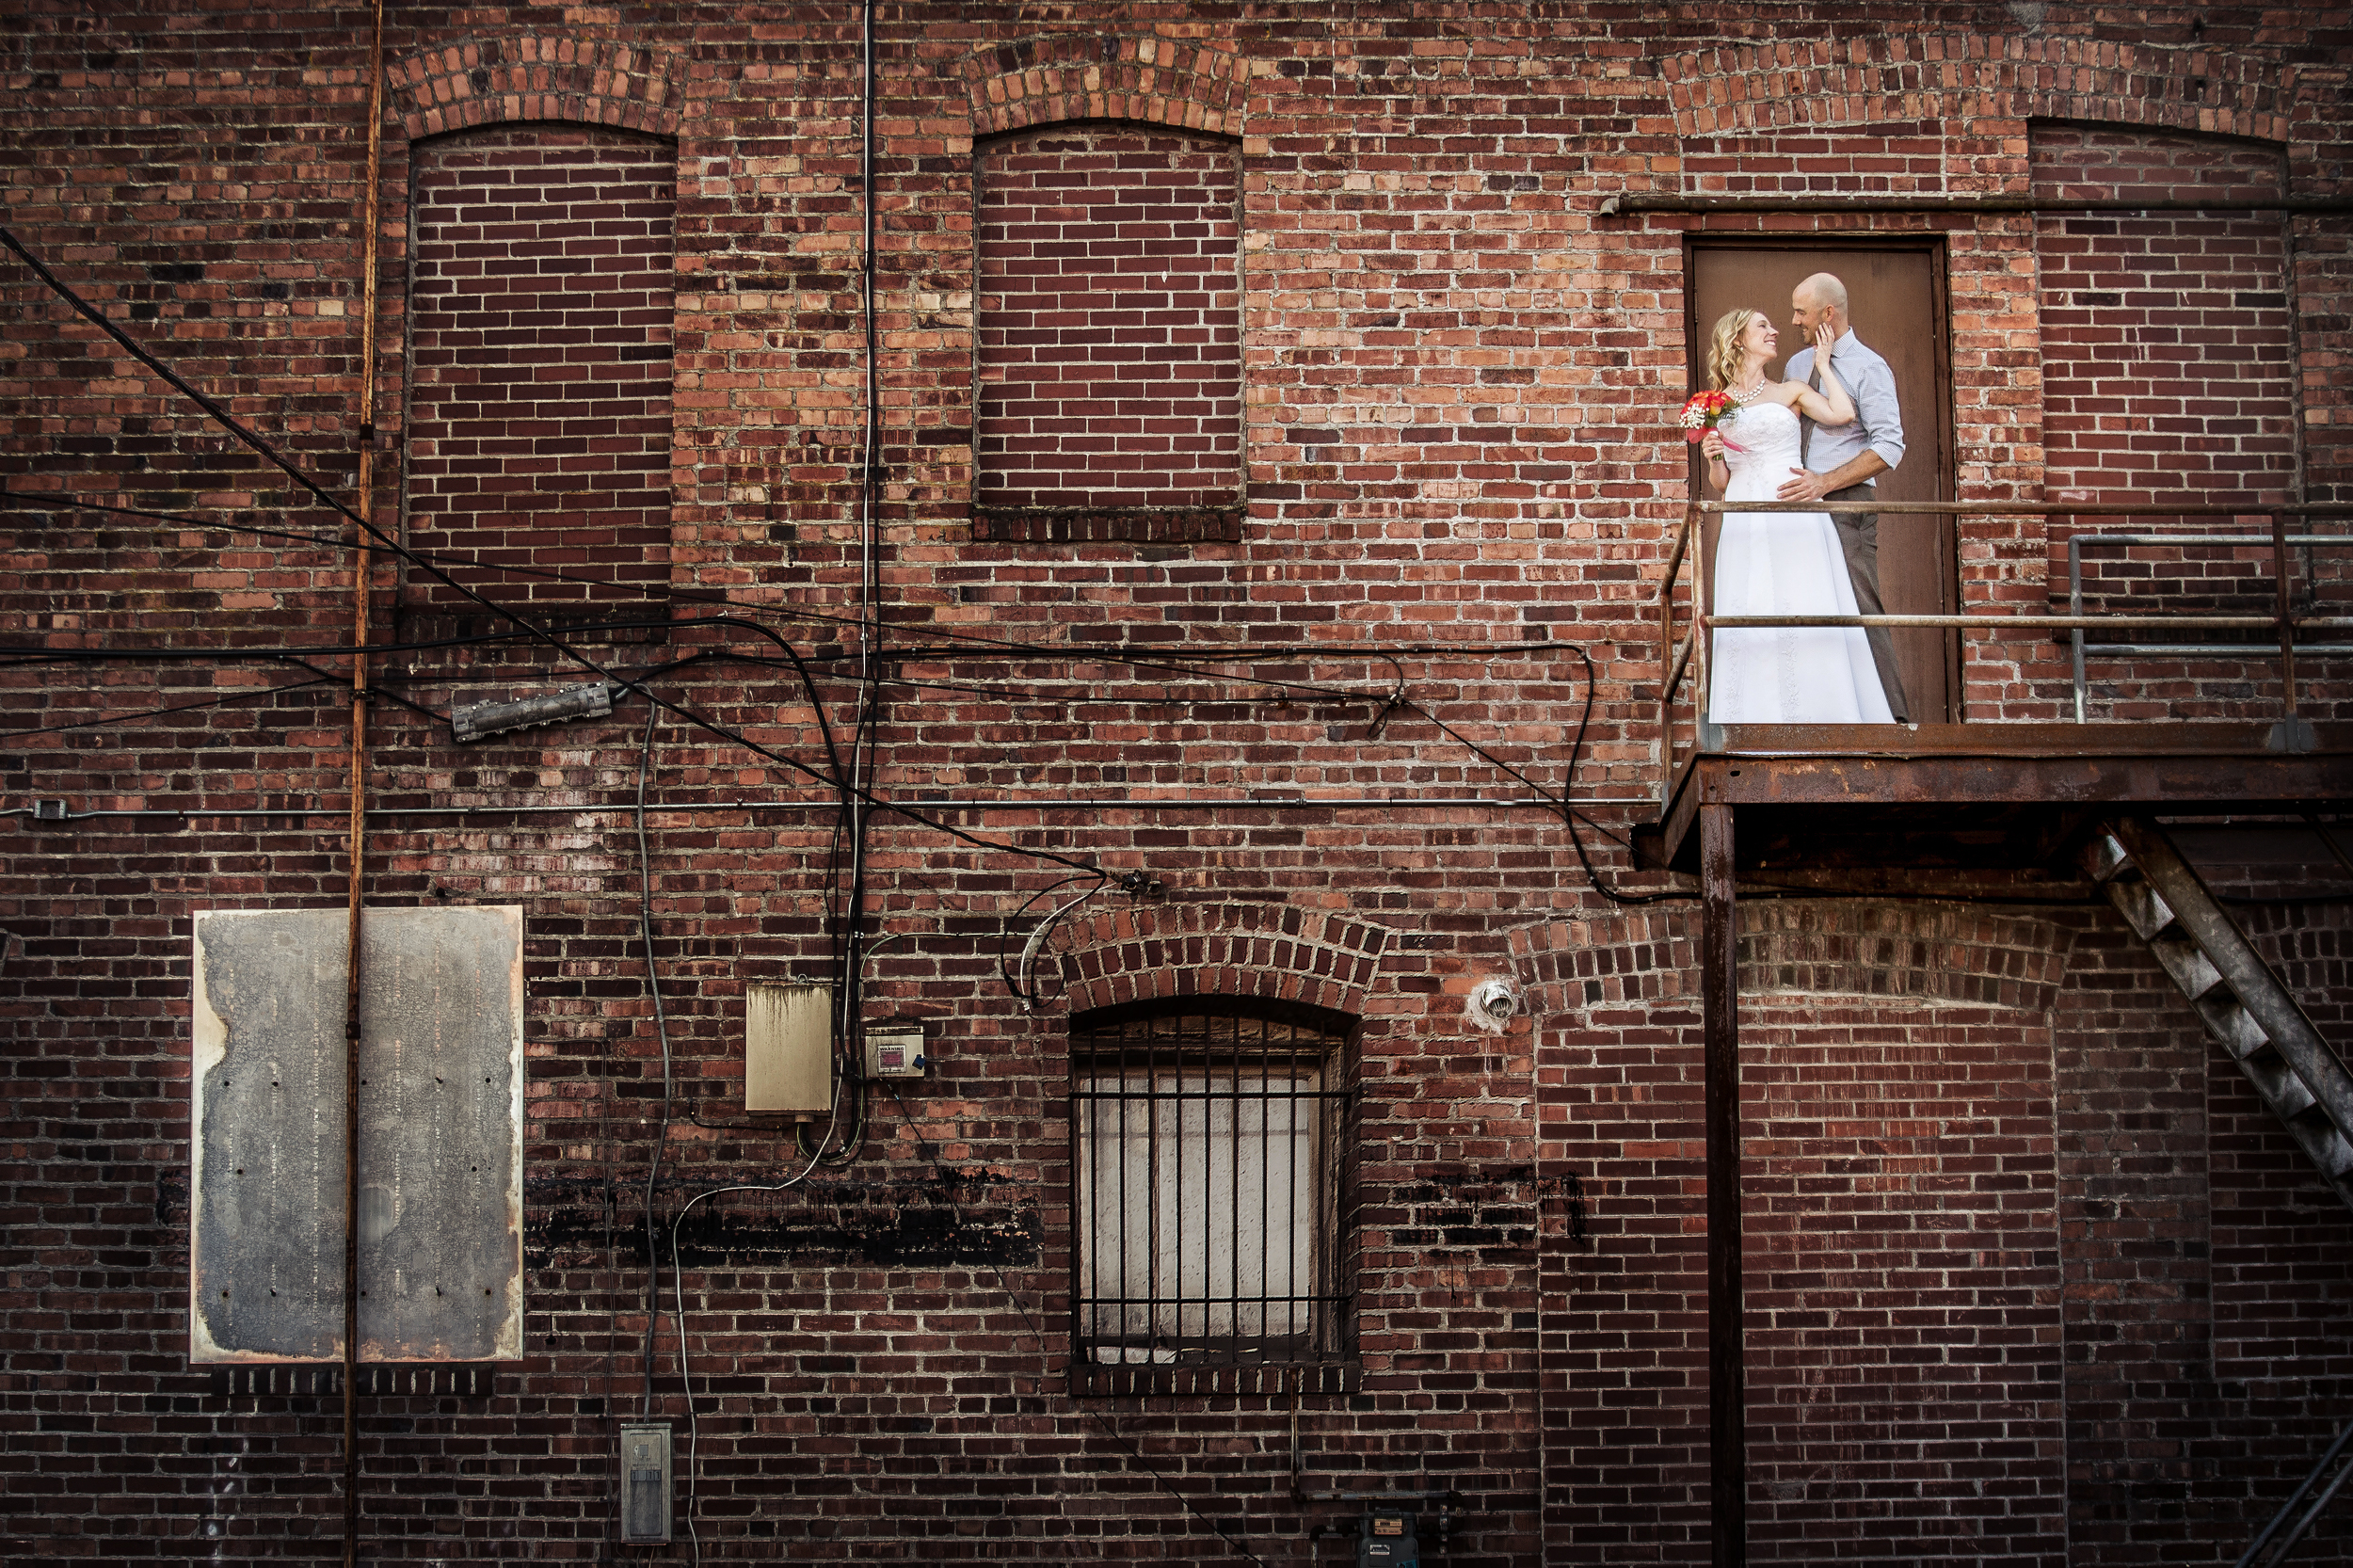 Sumner Washington Wedding, Brick Fire Escape